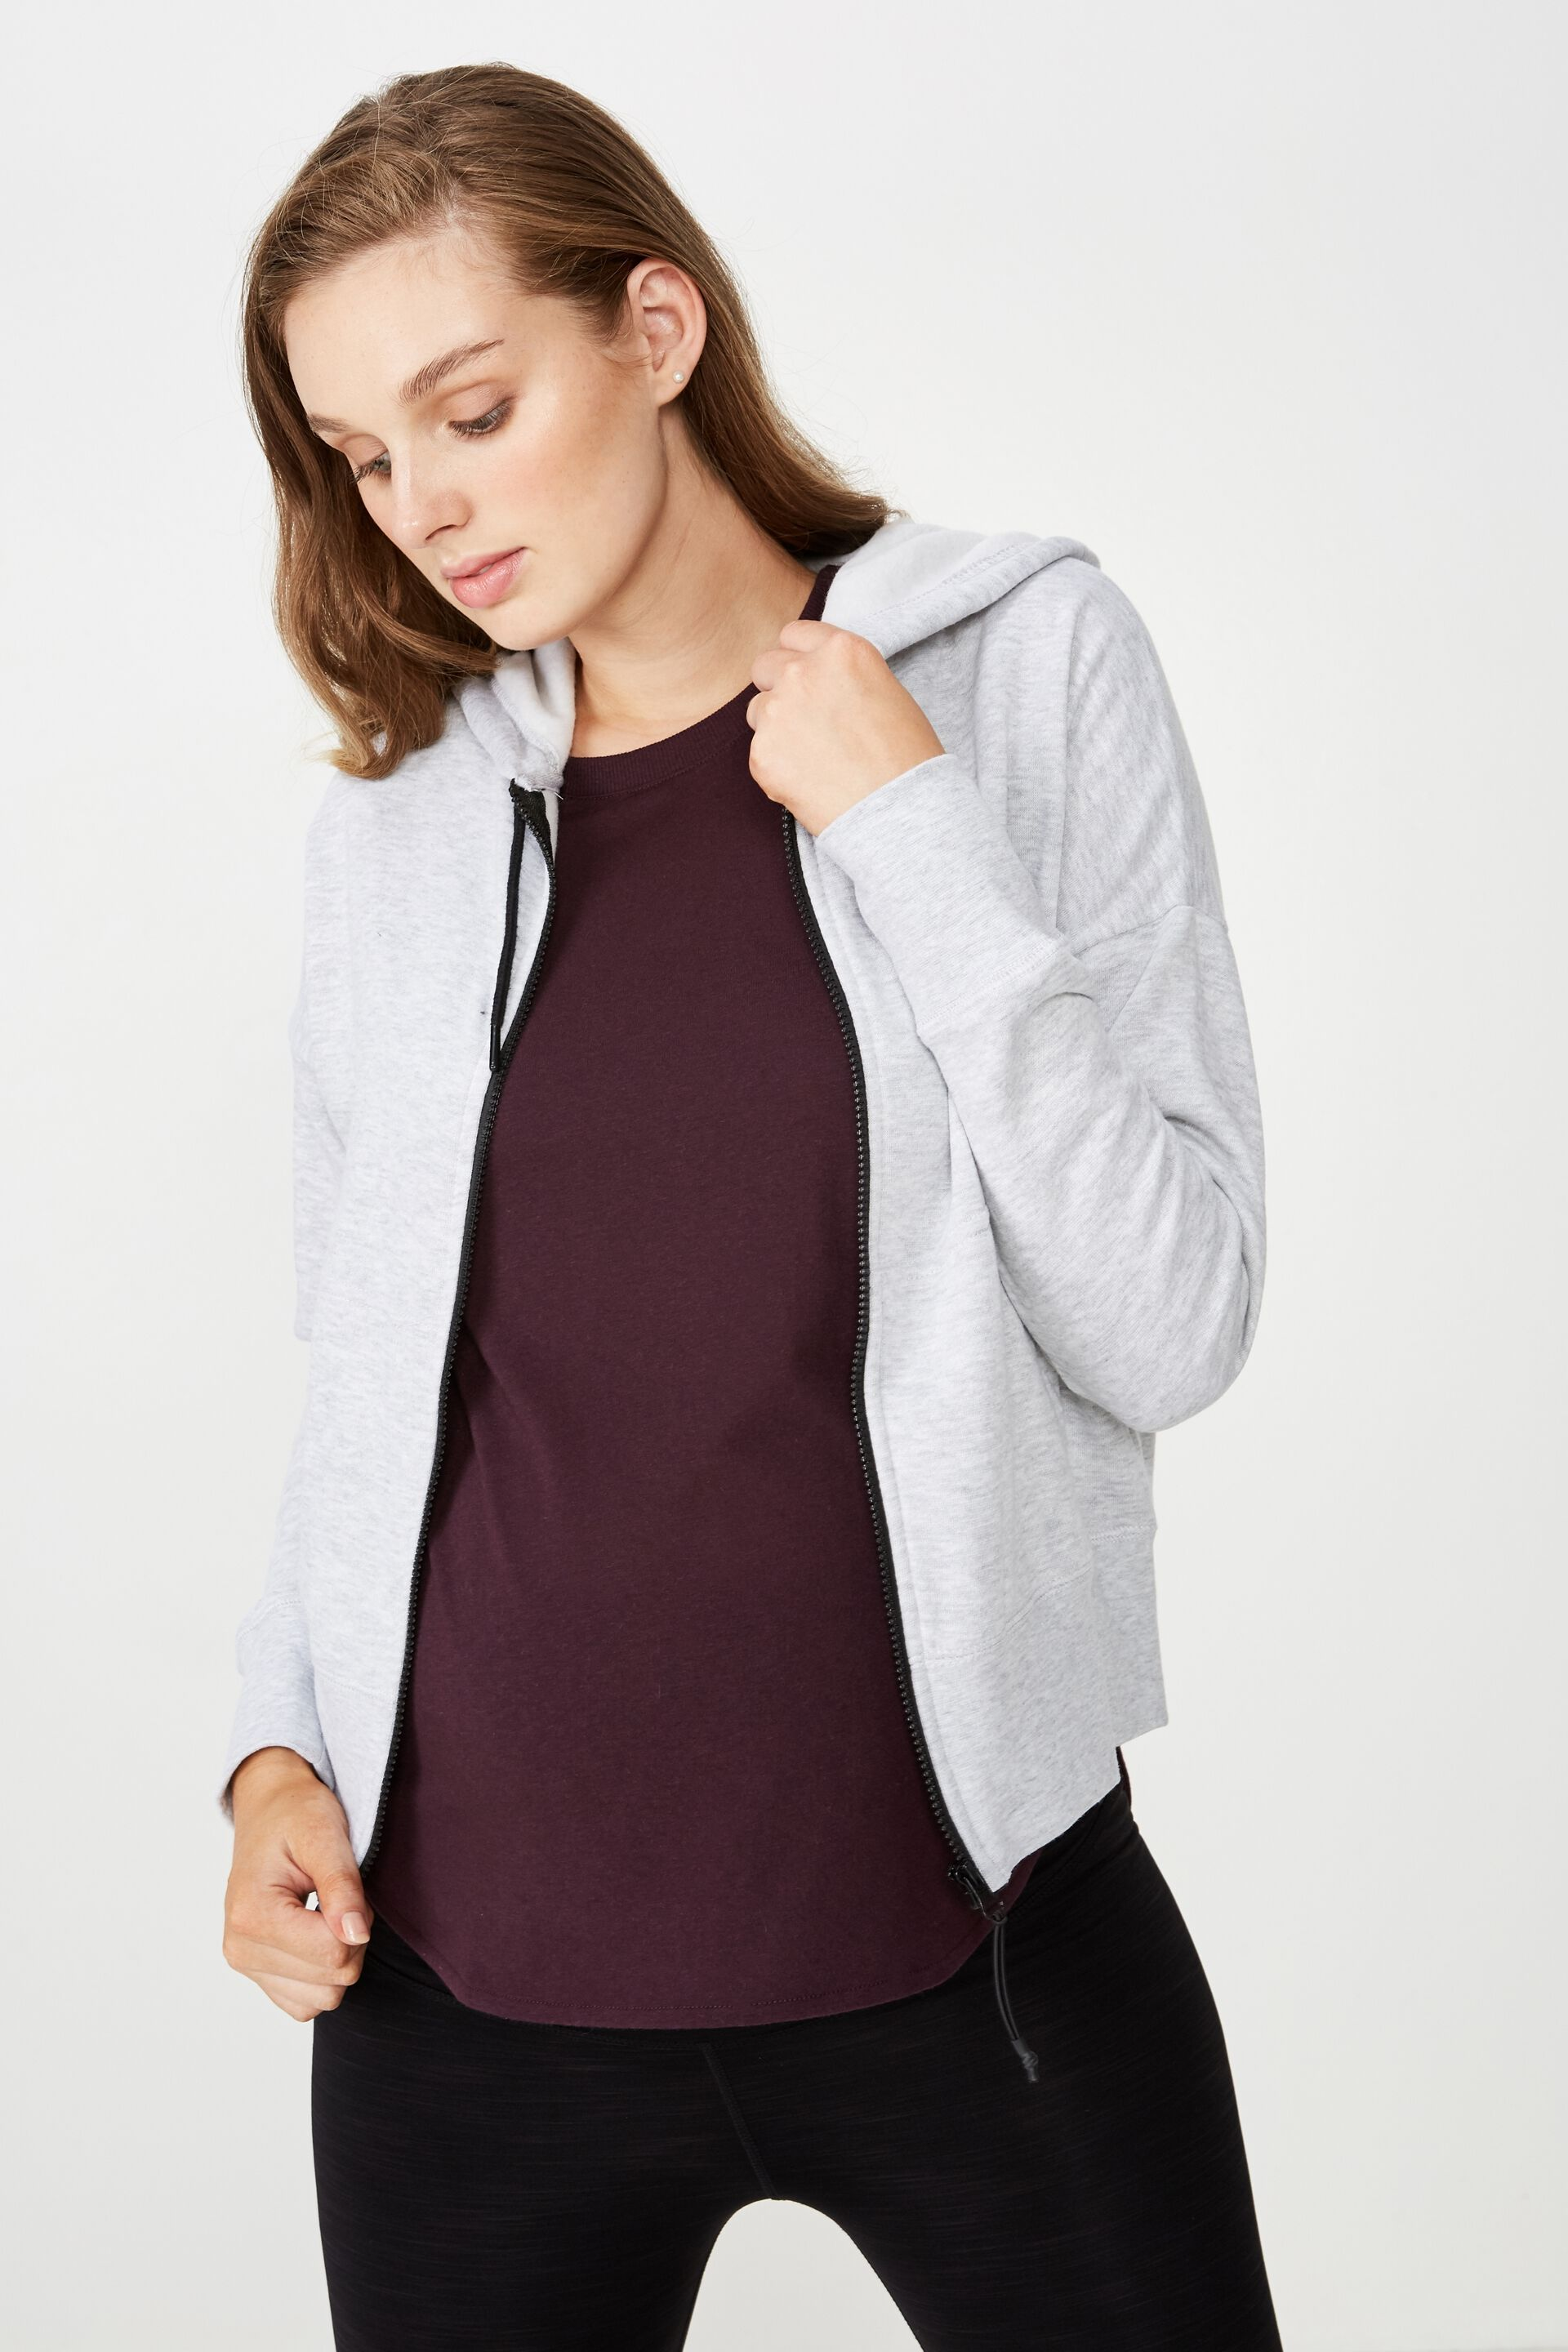 What shops sell maternity clothes in store